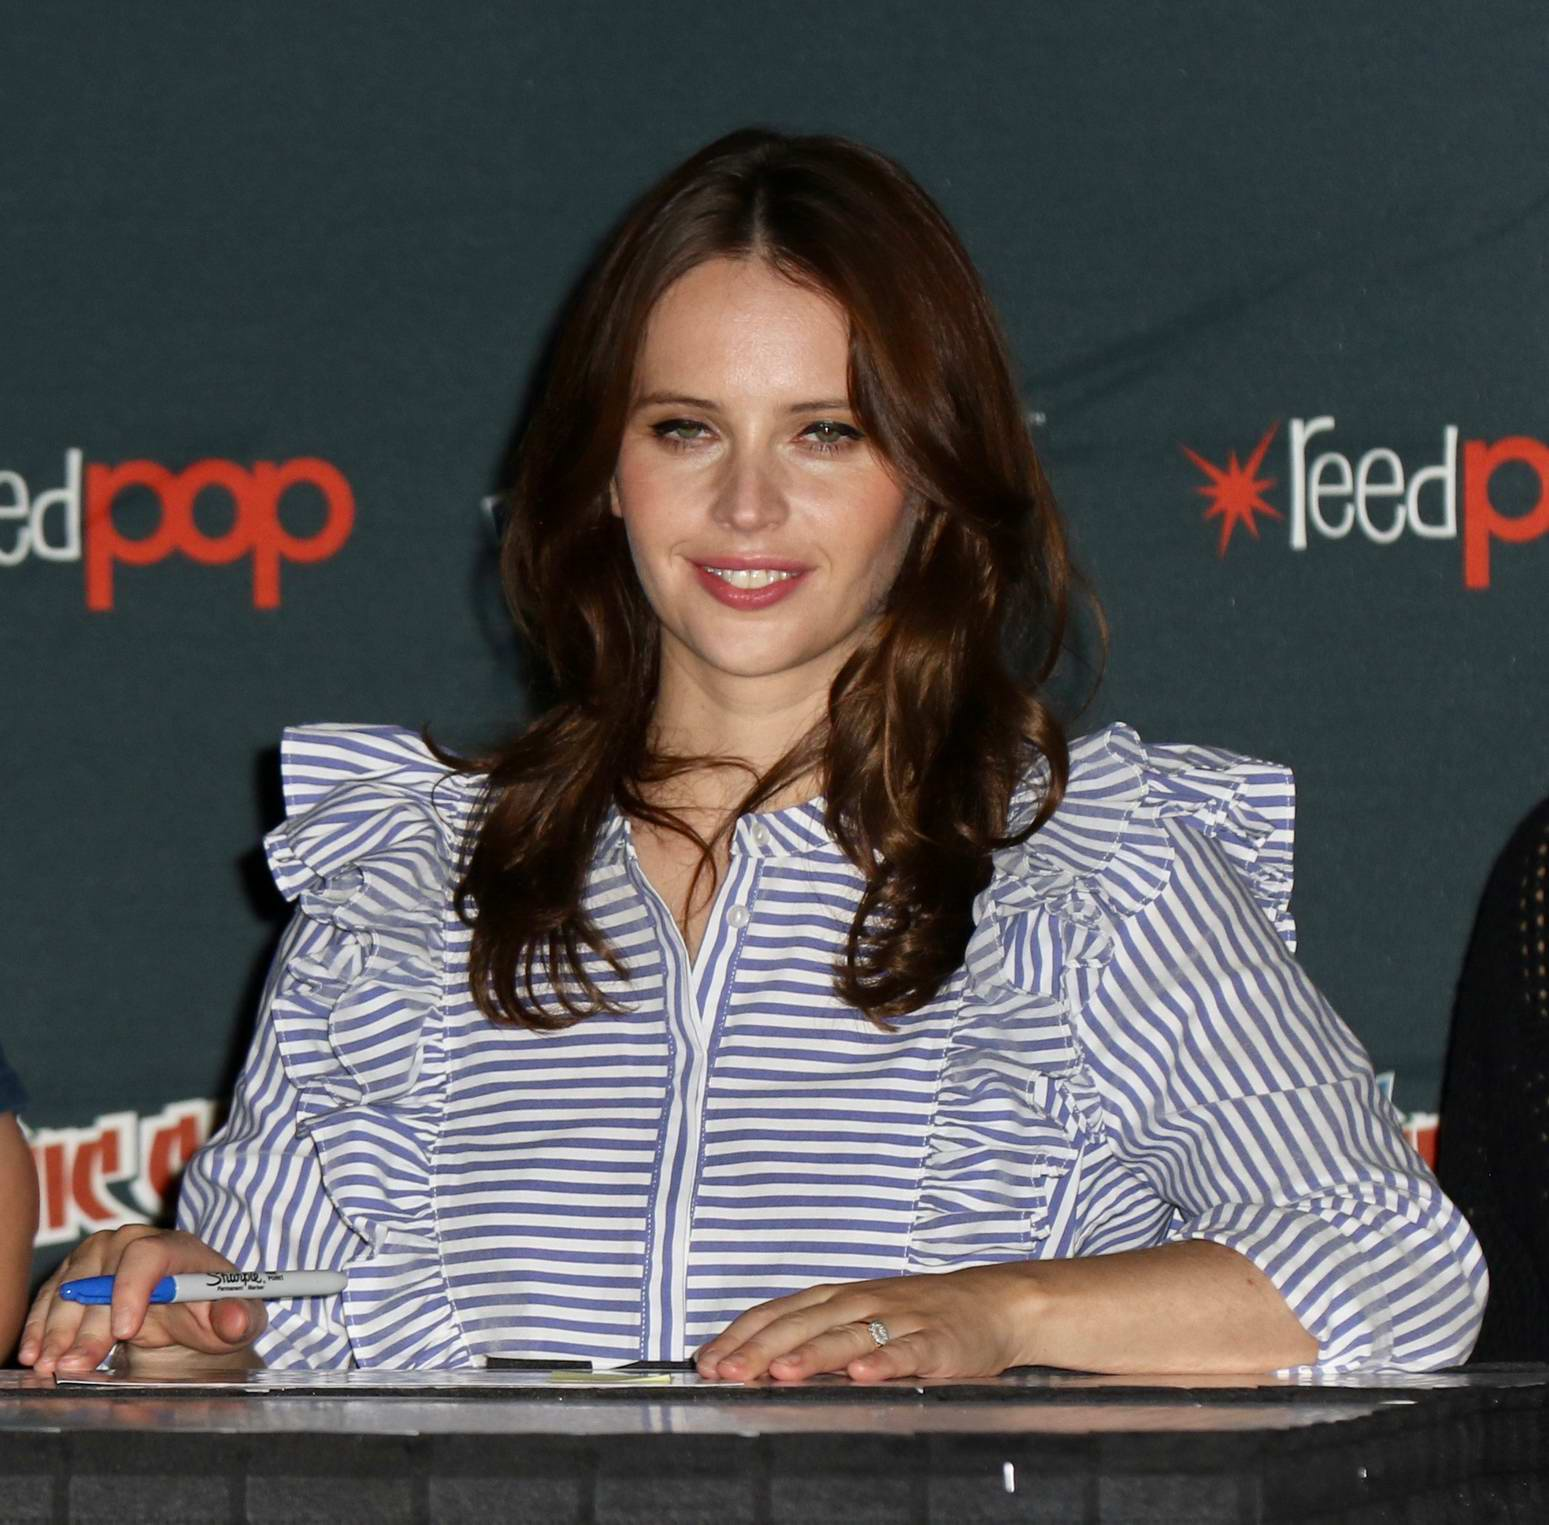 Felicity Jones attends the New York Comic-Con 2017 in New York